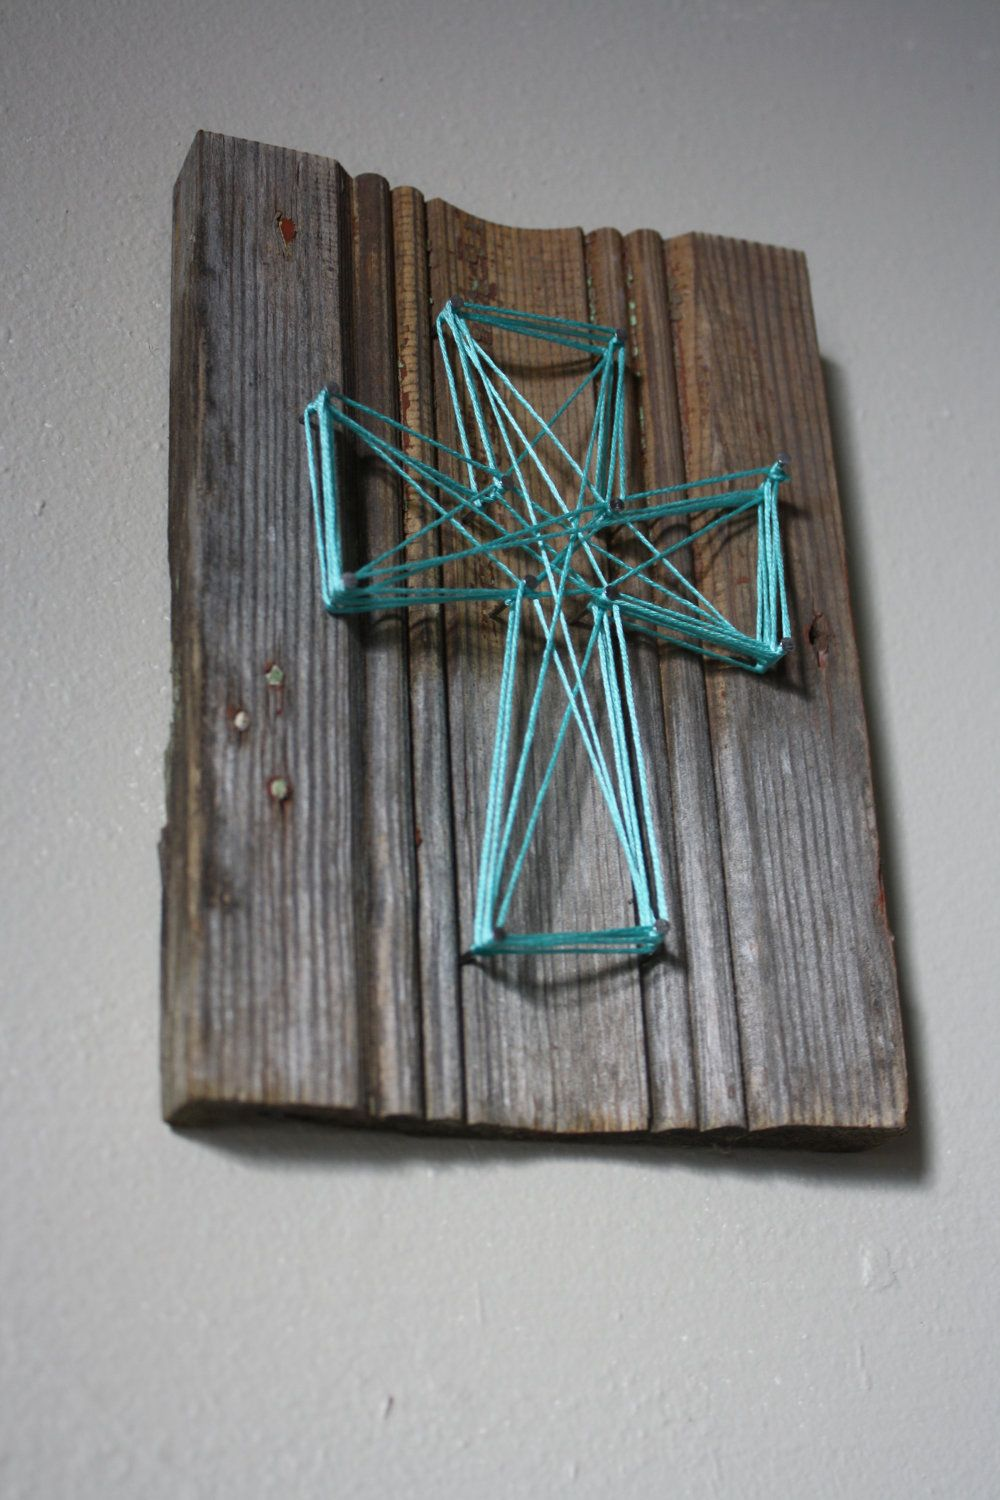 reclaimed wood trim with string art cross wall decor. $8.00, via